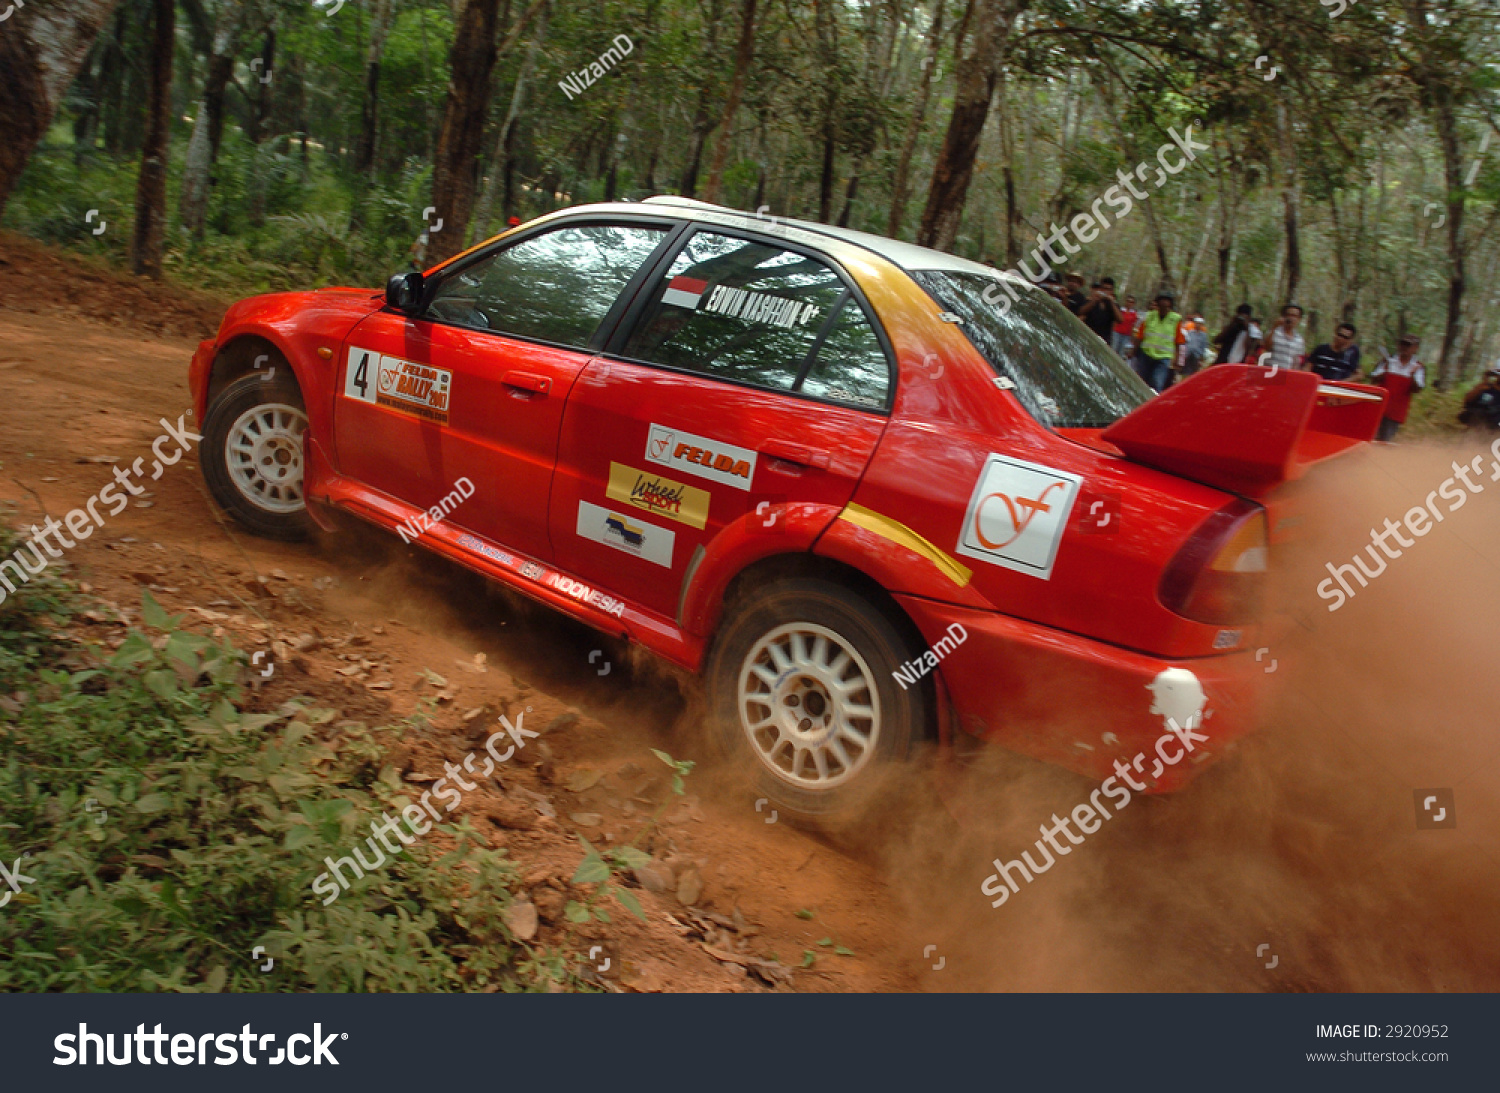 Mitsubishi Rally Car Action Stock Photo 2920952 - Shutterstock